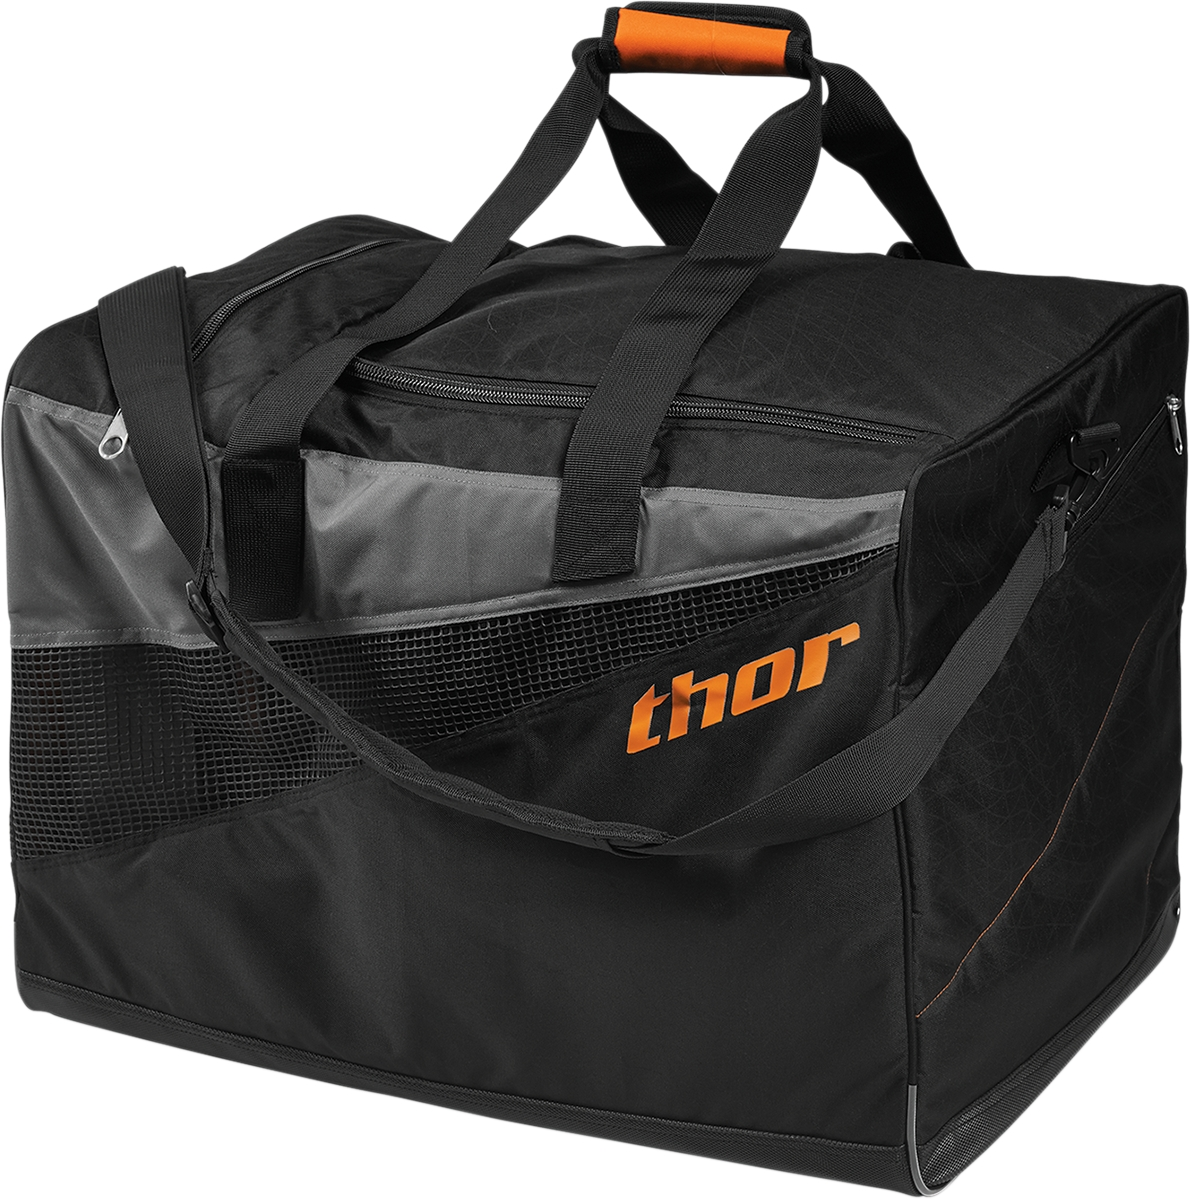 Thor S6 Equip Gear Bag